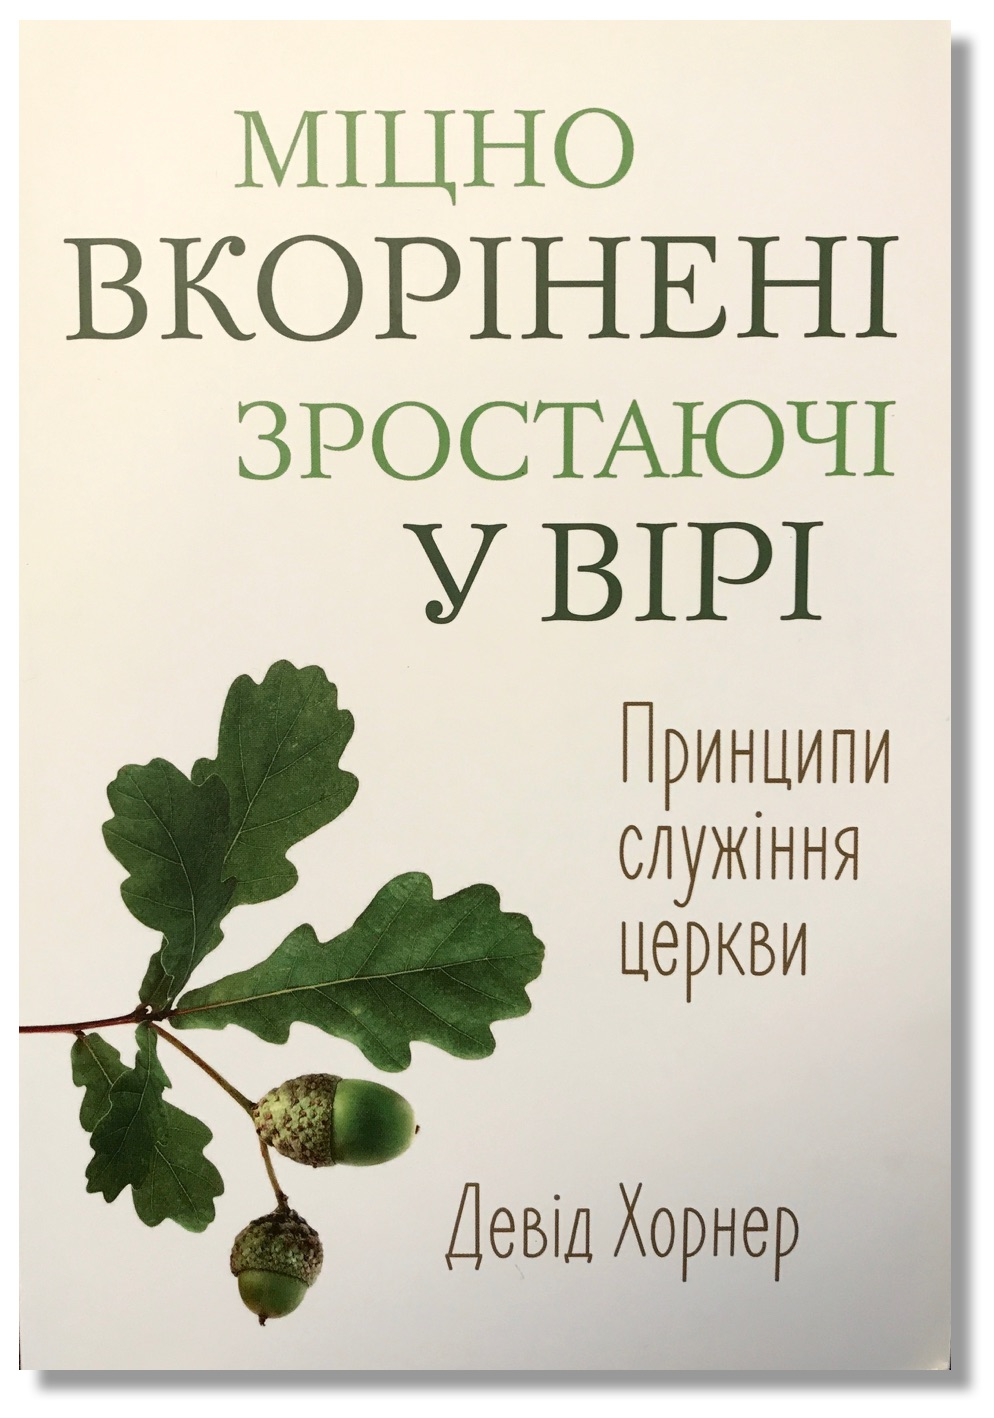 My book,  firmly rooted, faithfully growing , was translated and published in ukrainian and is being used to train church leaders in the baptist youth of ukraine.